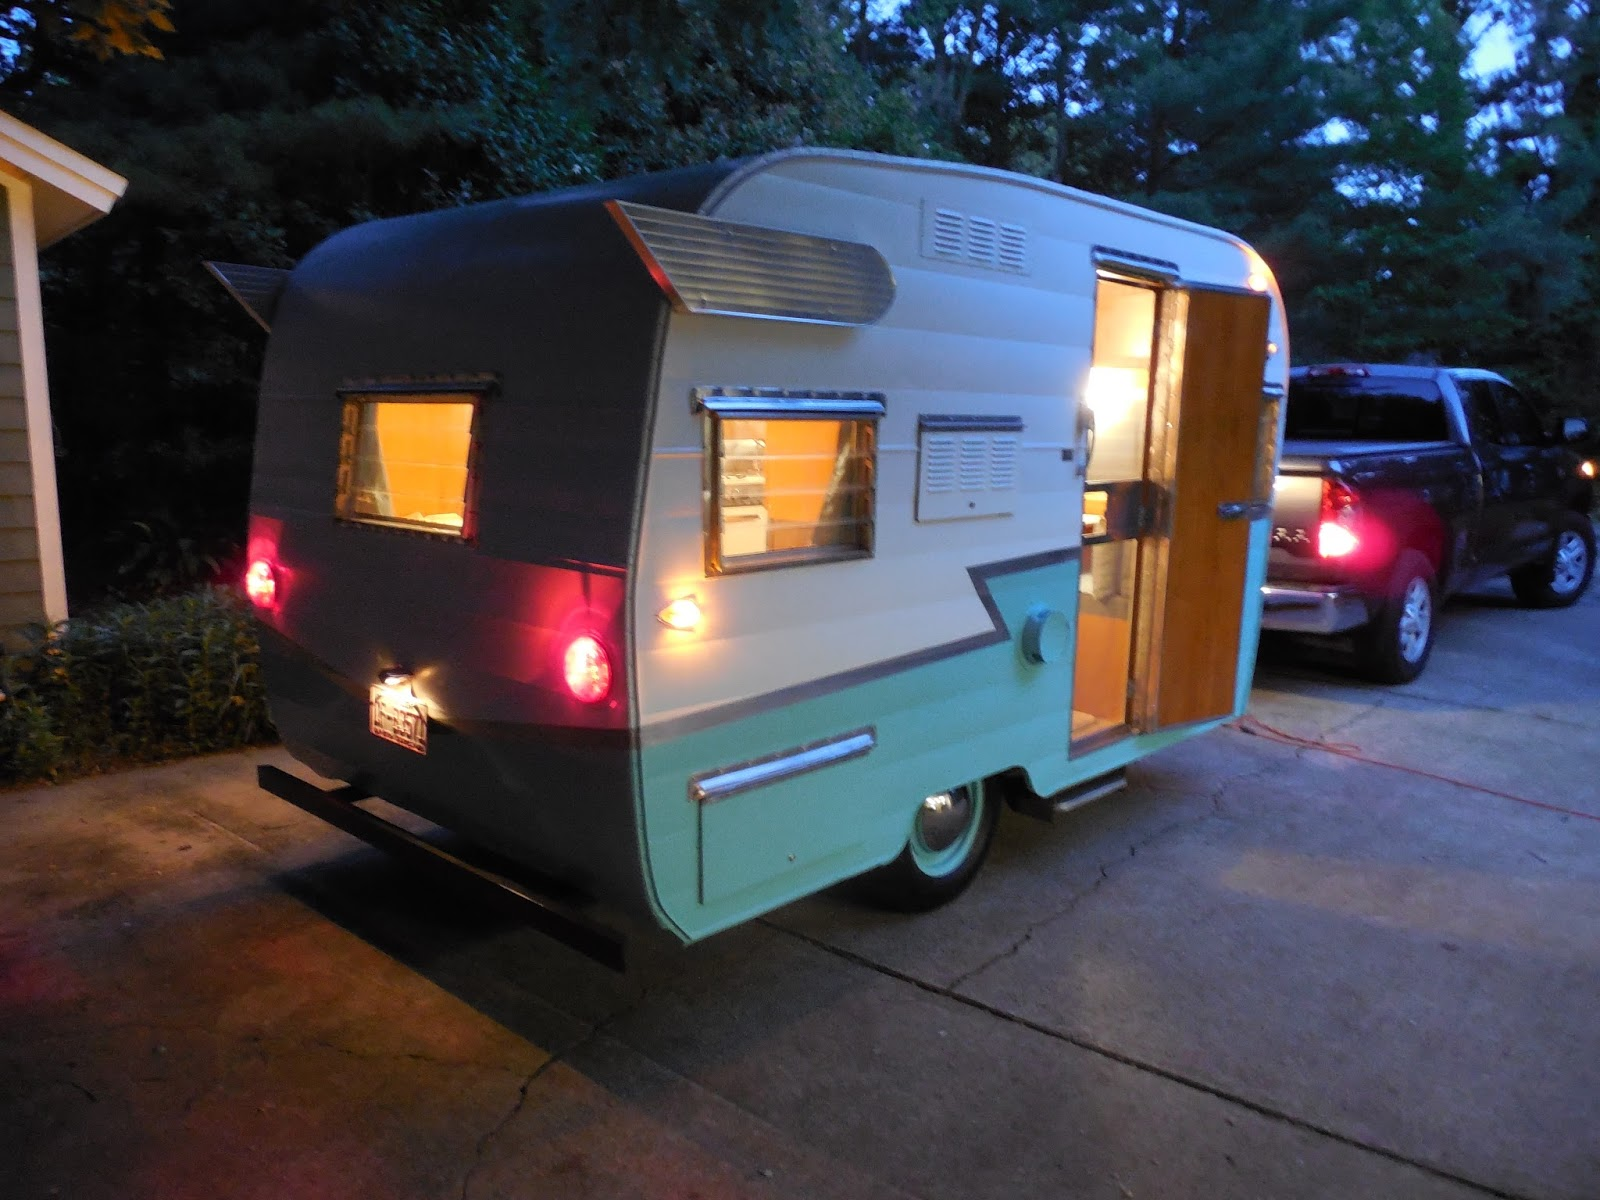 1964 Shasta 1500 Our Camper Trailer Wiring Restoring Vintage Campers Has Been My Hobby Since Retiring This Restoration Took Me About 500 Hours Start To Finish Its Hope That Blog Will Give